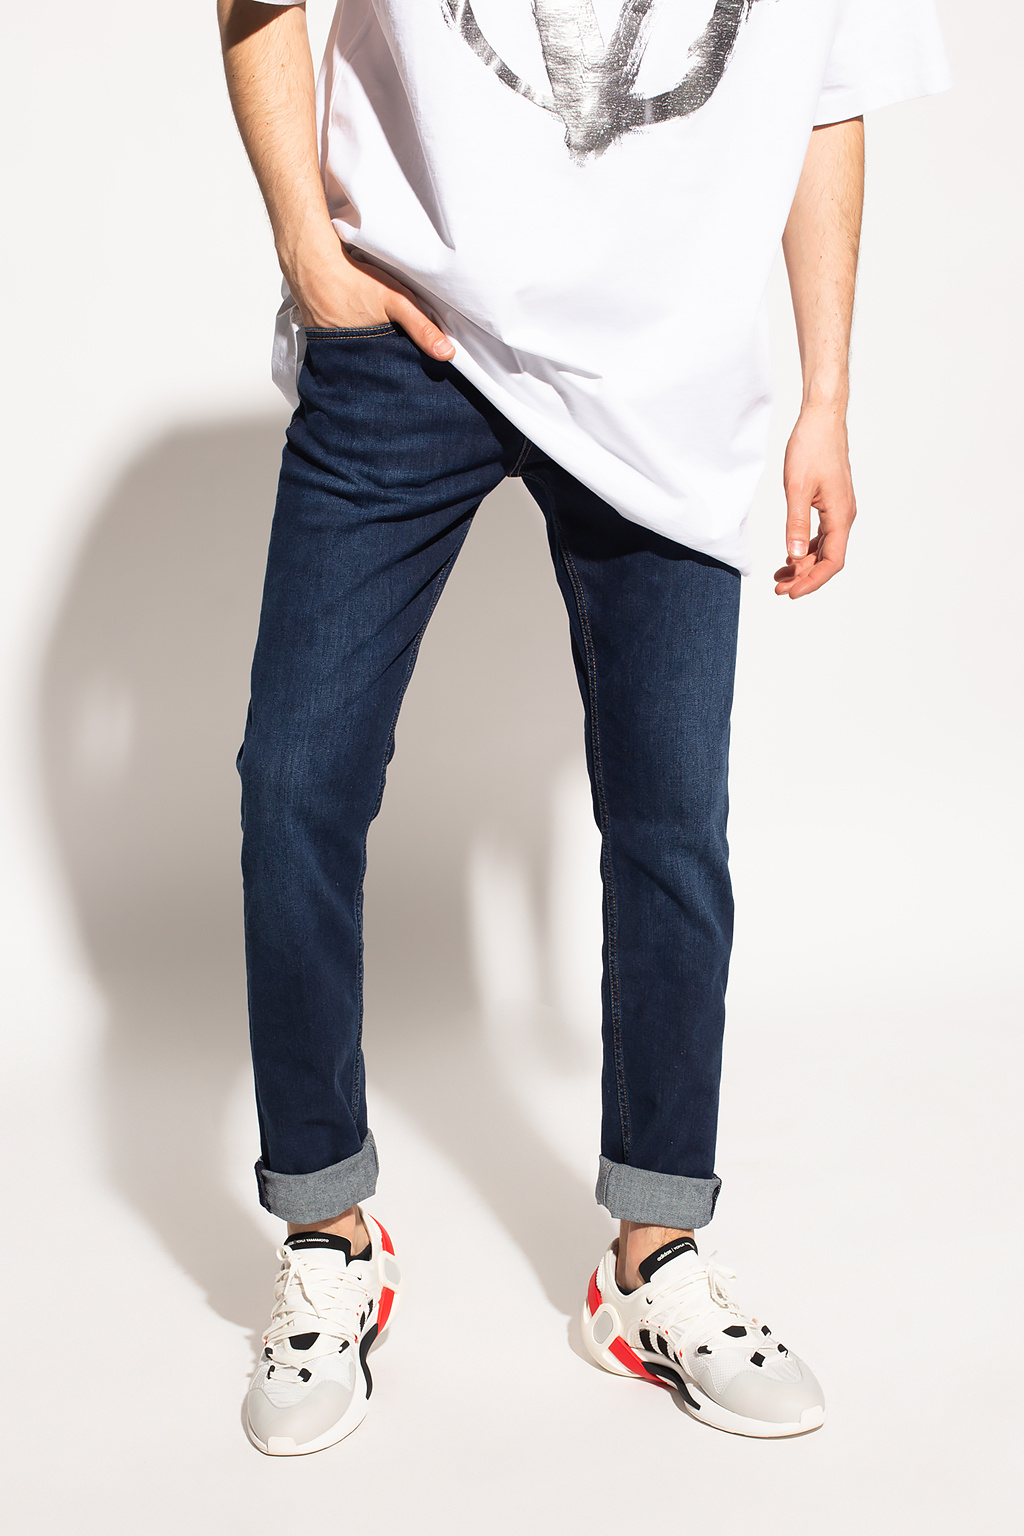 Alexander McQueen Jeans with pockets